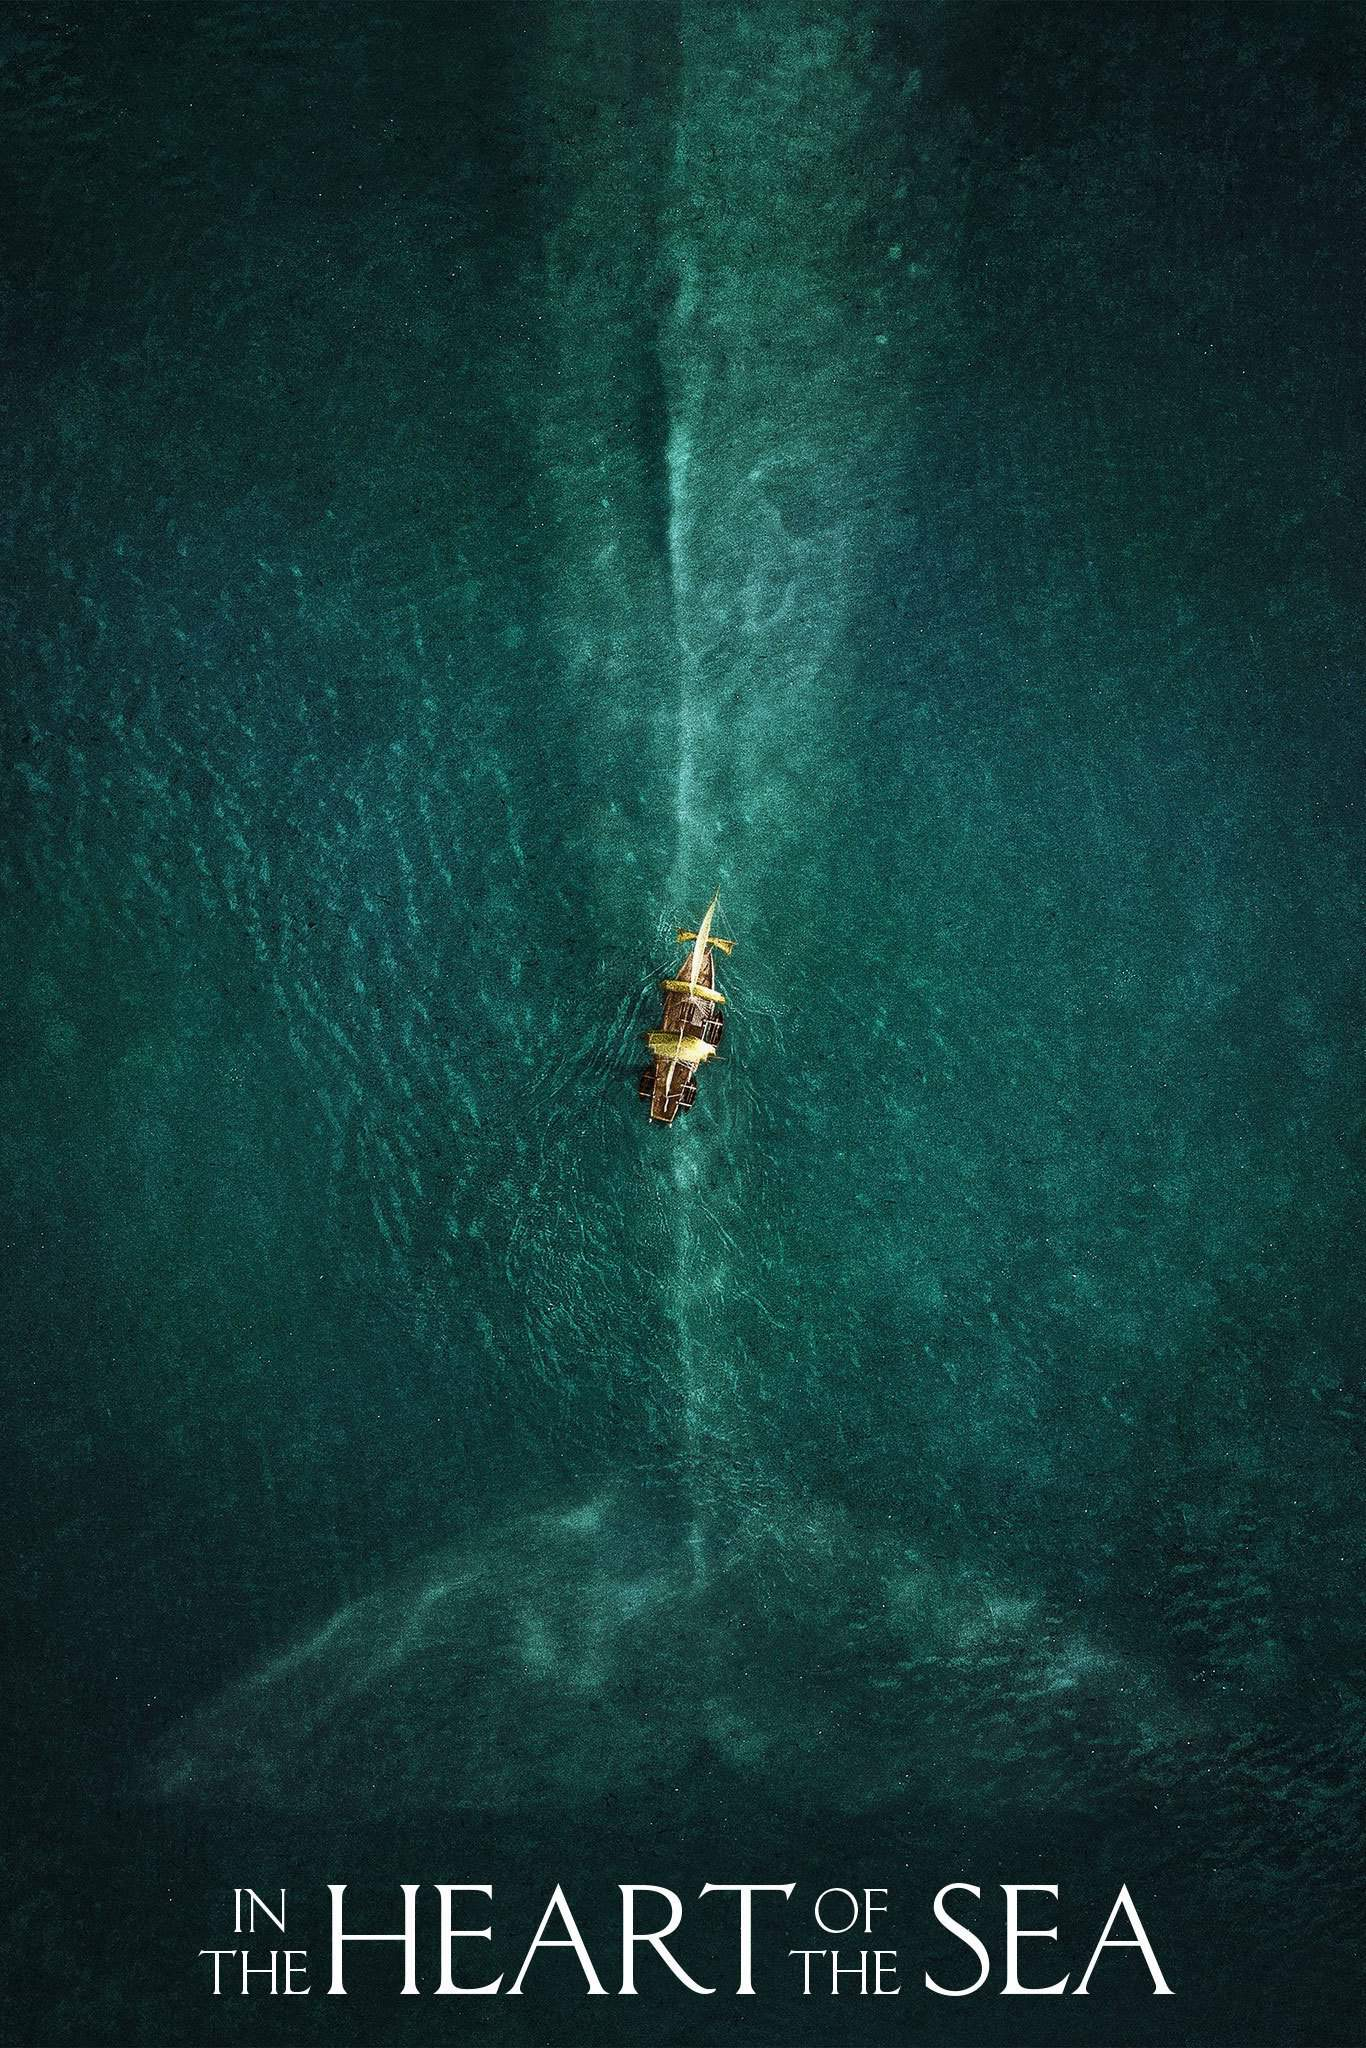 In the Heart of the Sea, 2015